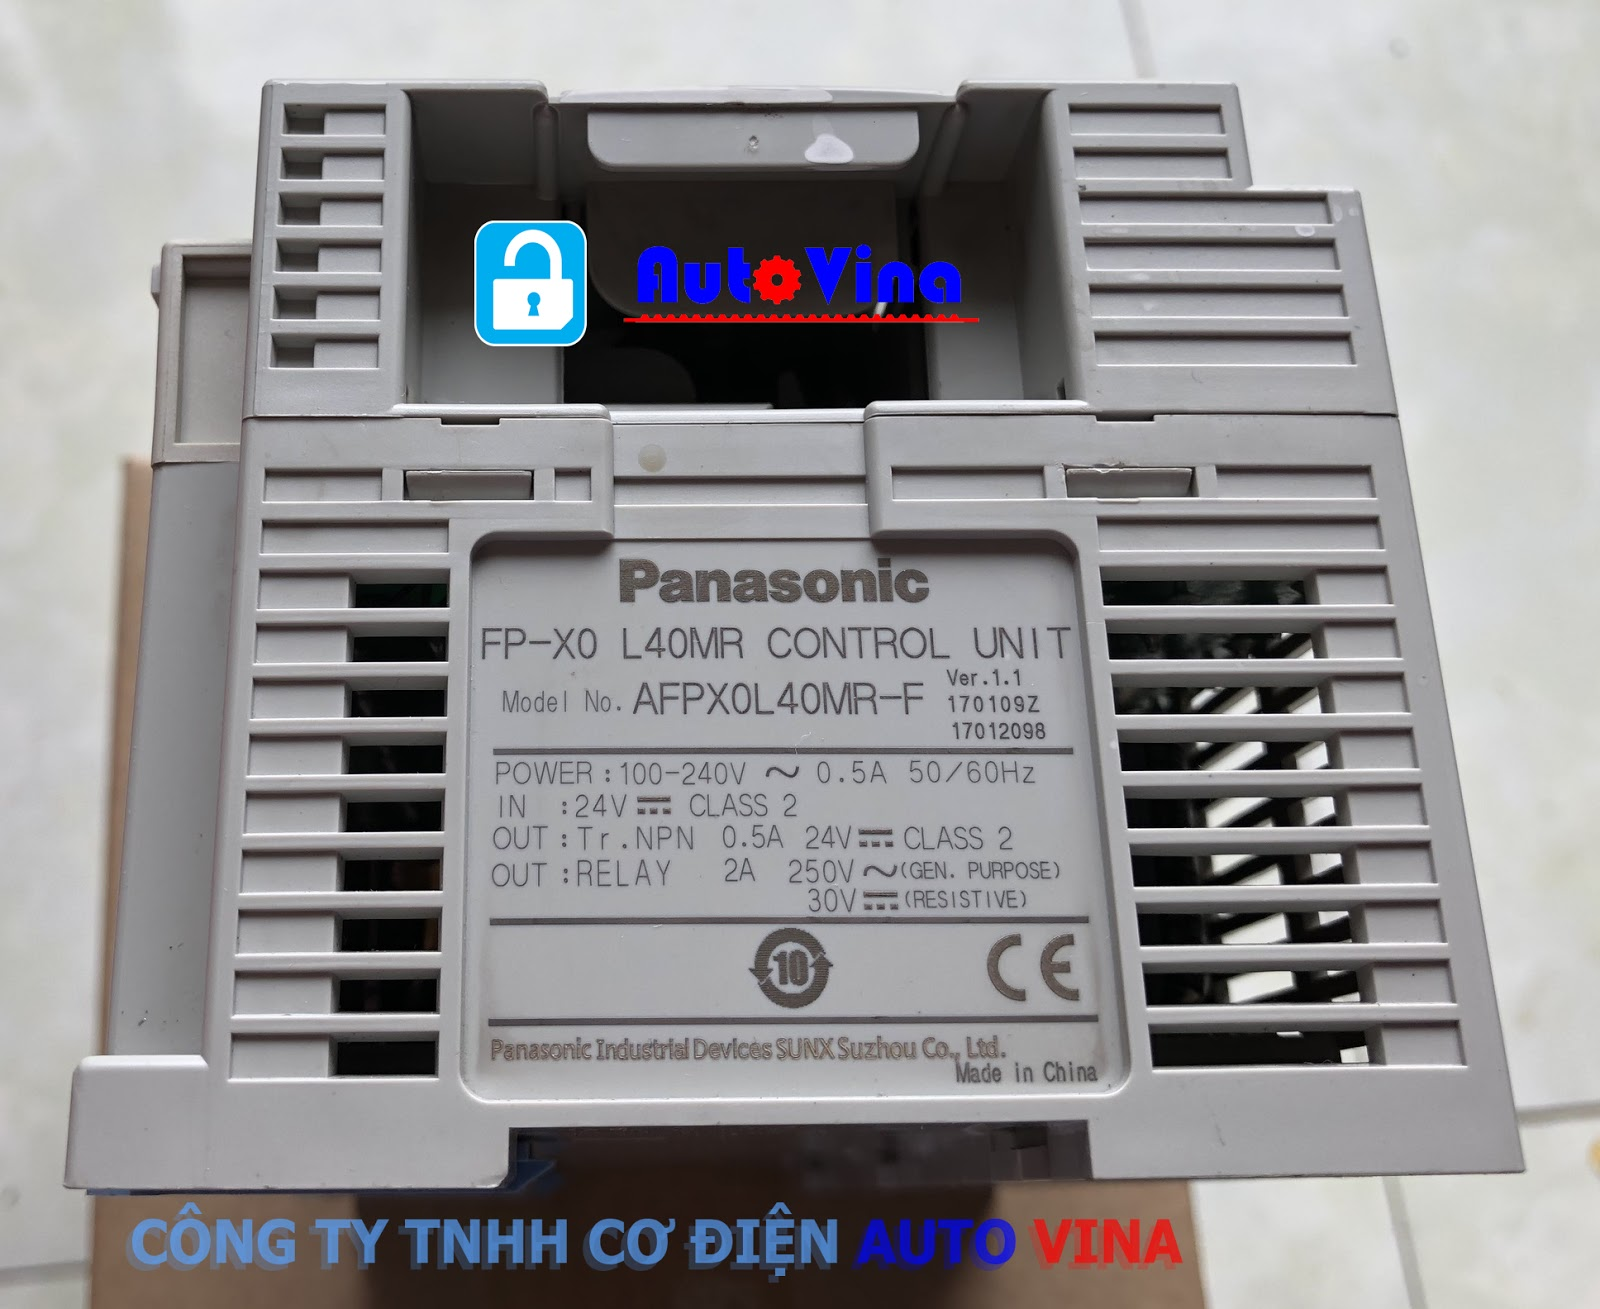 Mở khóa PLC Pansonic FP-X0 L40MR, unlock password plc Panasonic AFPX0L40MR-F